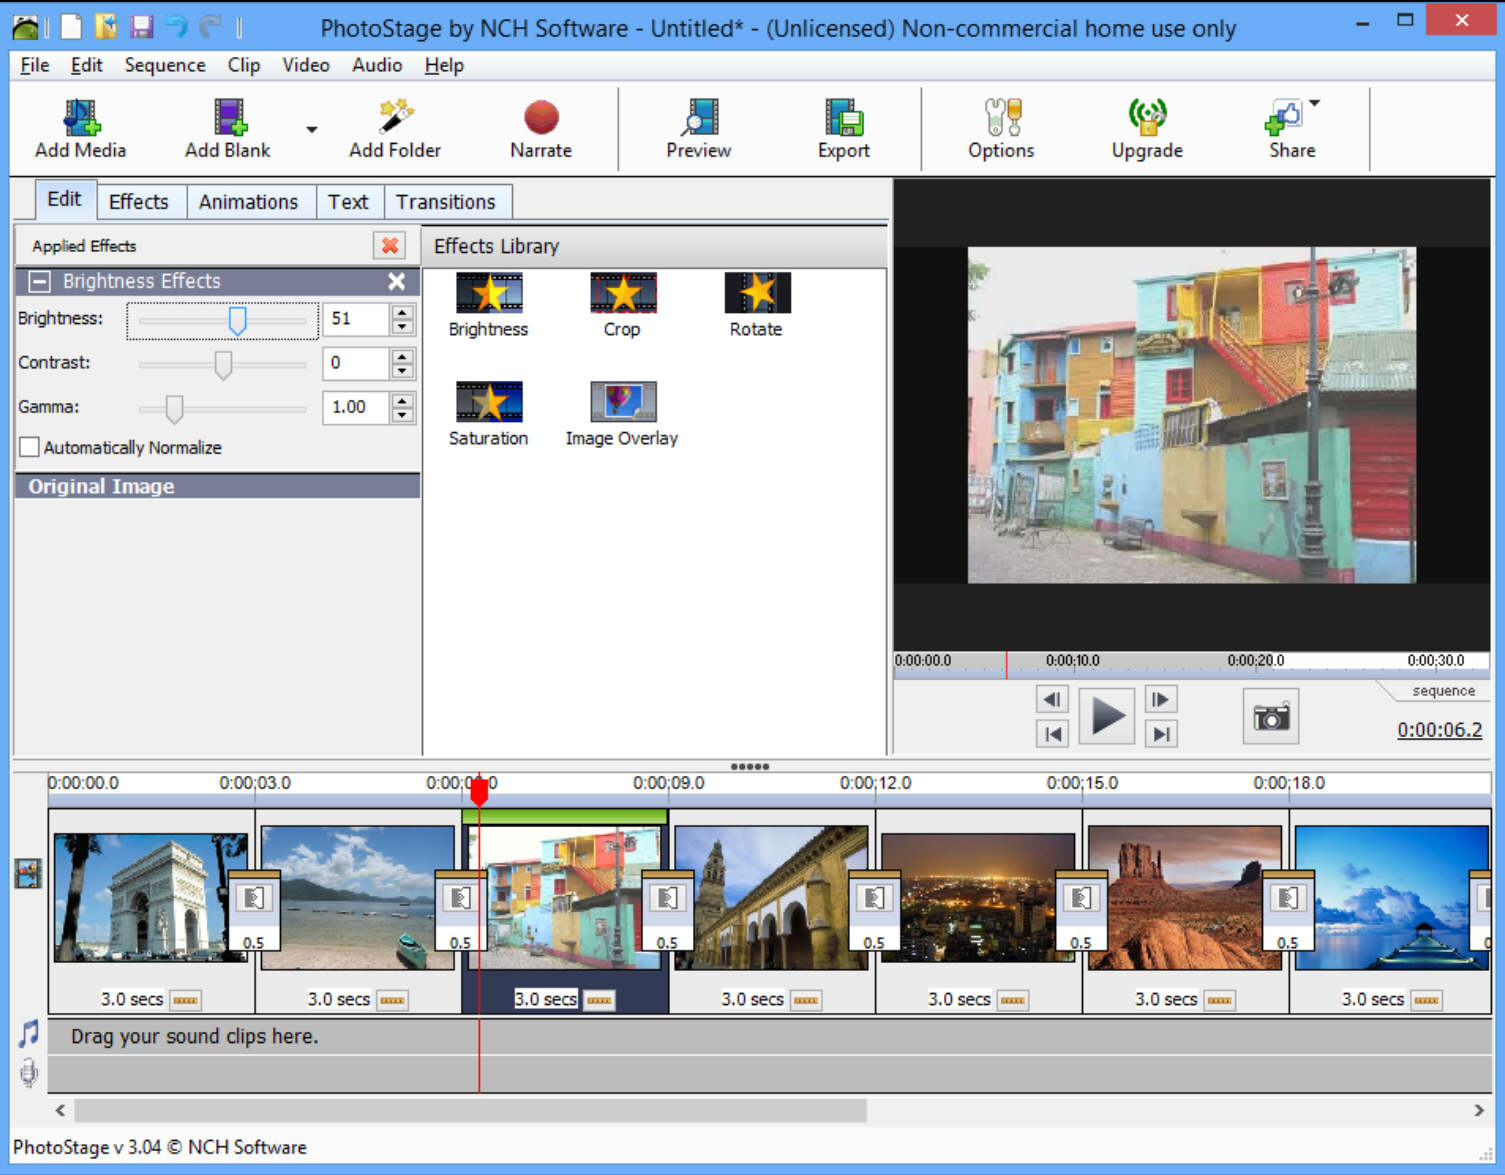 NCH PhotoStage Slideshow Producer Professional 4.17 Beta